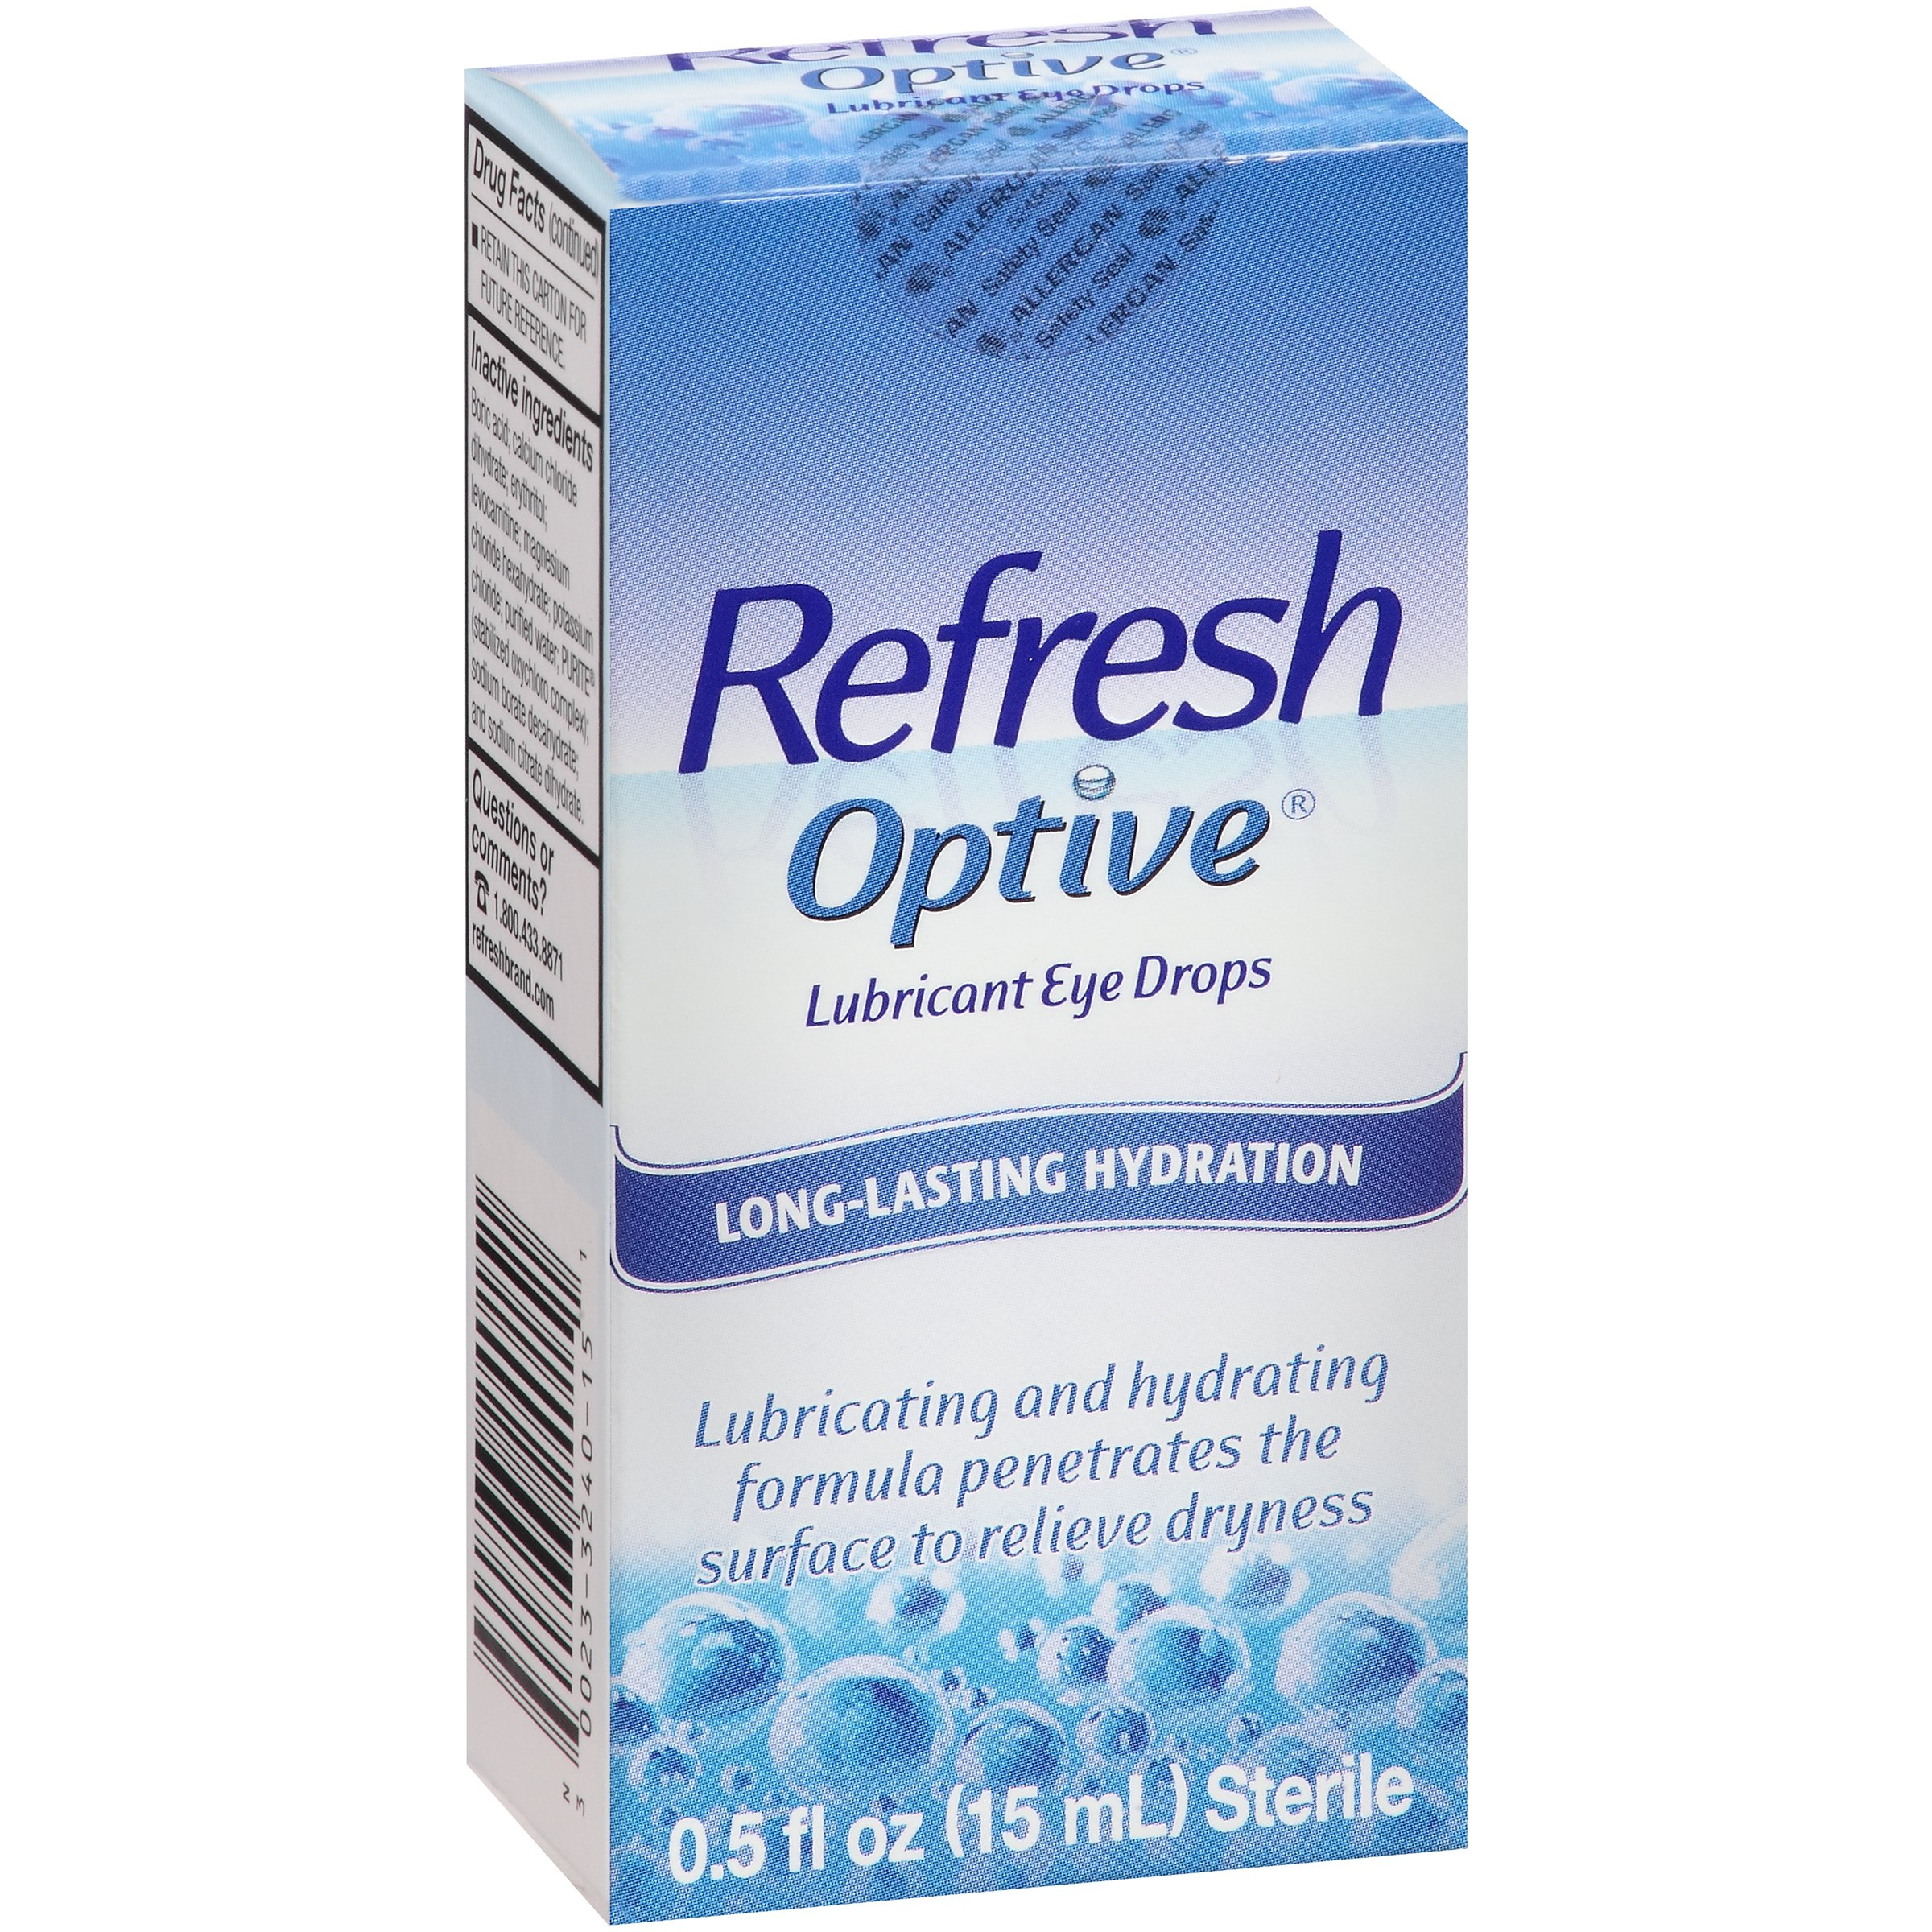 Refresh Optive® Lubricant Eye Drops 0.5 fl. oz. Box